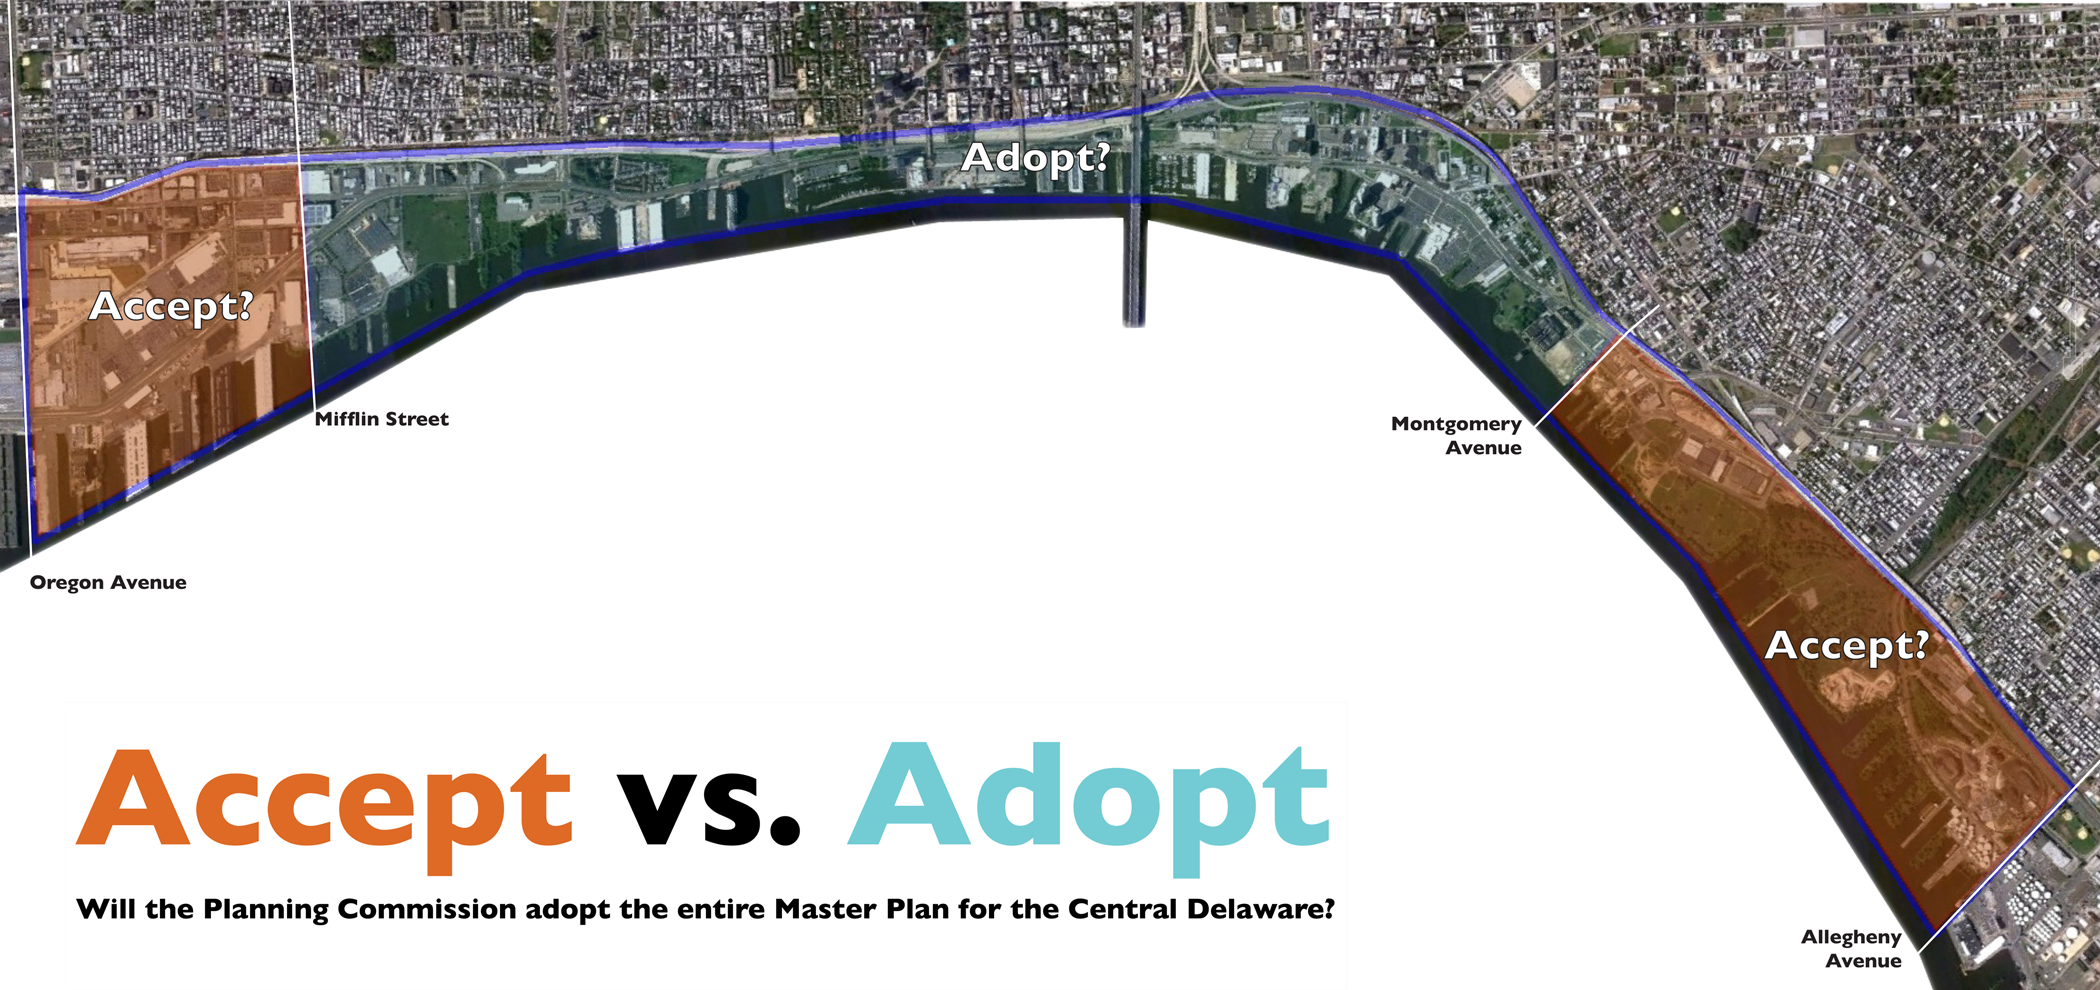 (Will the Planning Commission adopt the entirety of the Master Plan for the Central Delaware, or will it cut off the ends?)